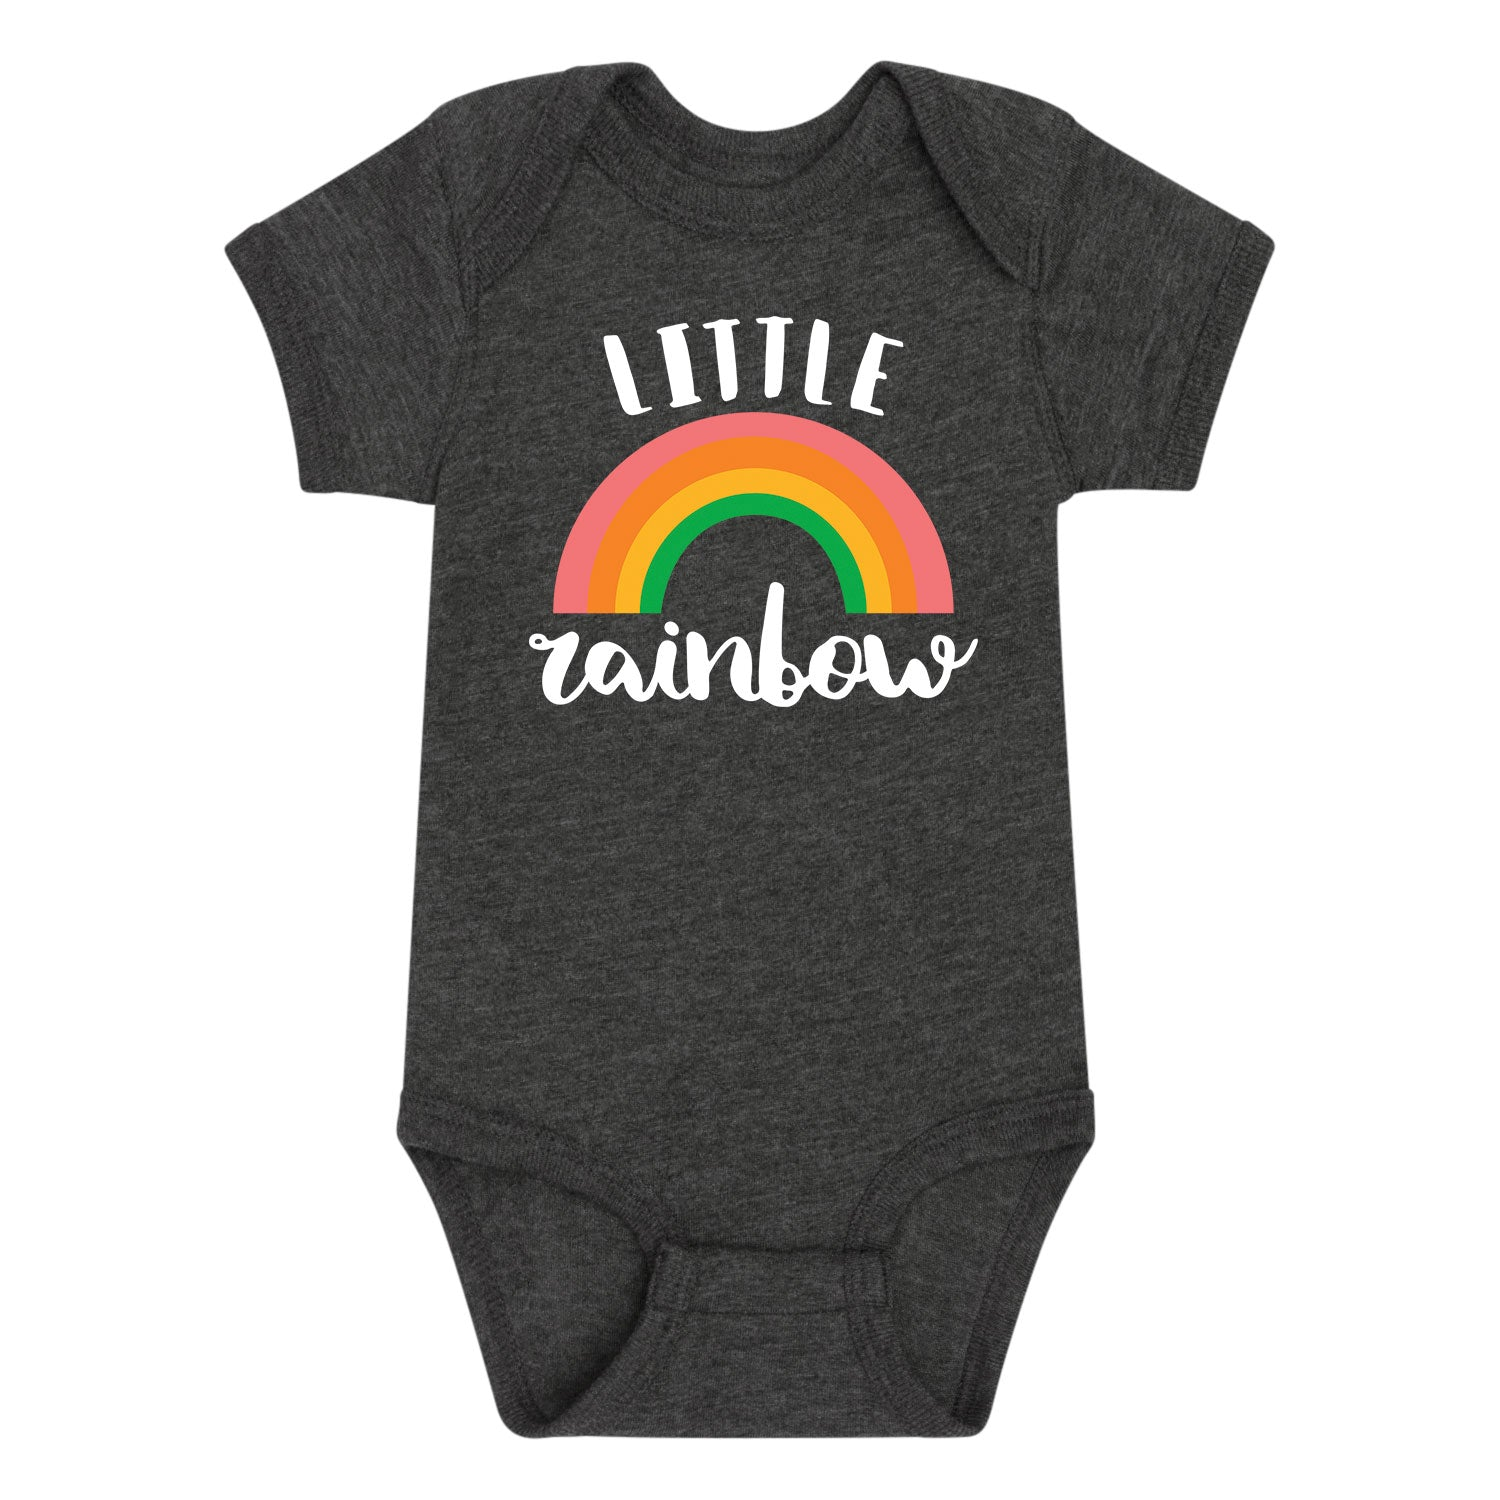 Rainbow Little - Infant One Piece